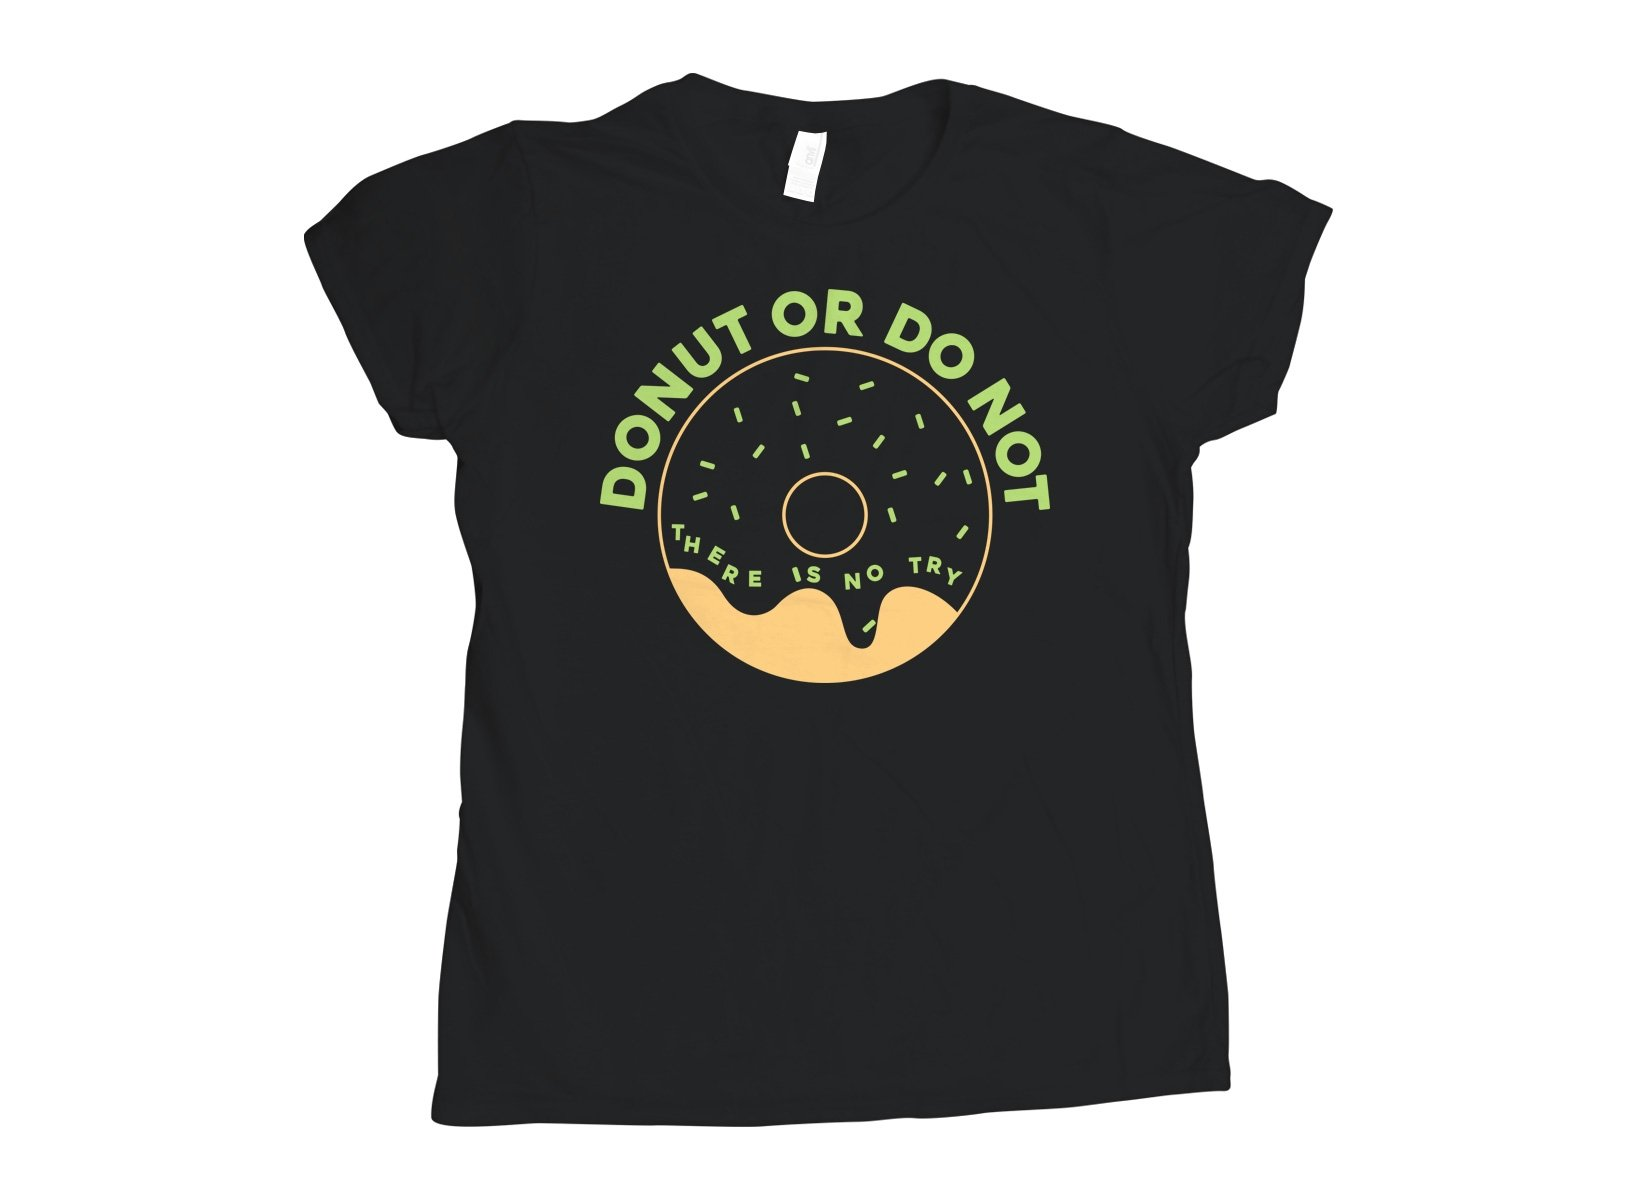 Donut Or Do Not on Womens T-Shirt